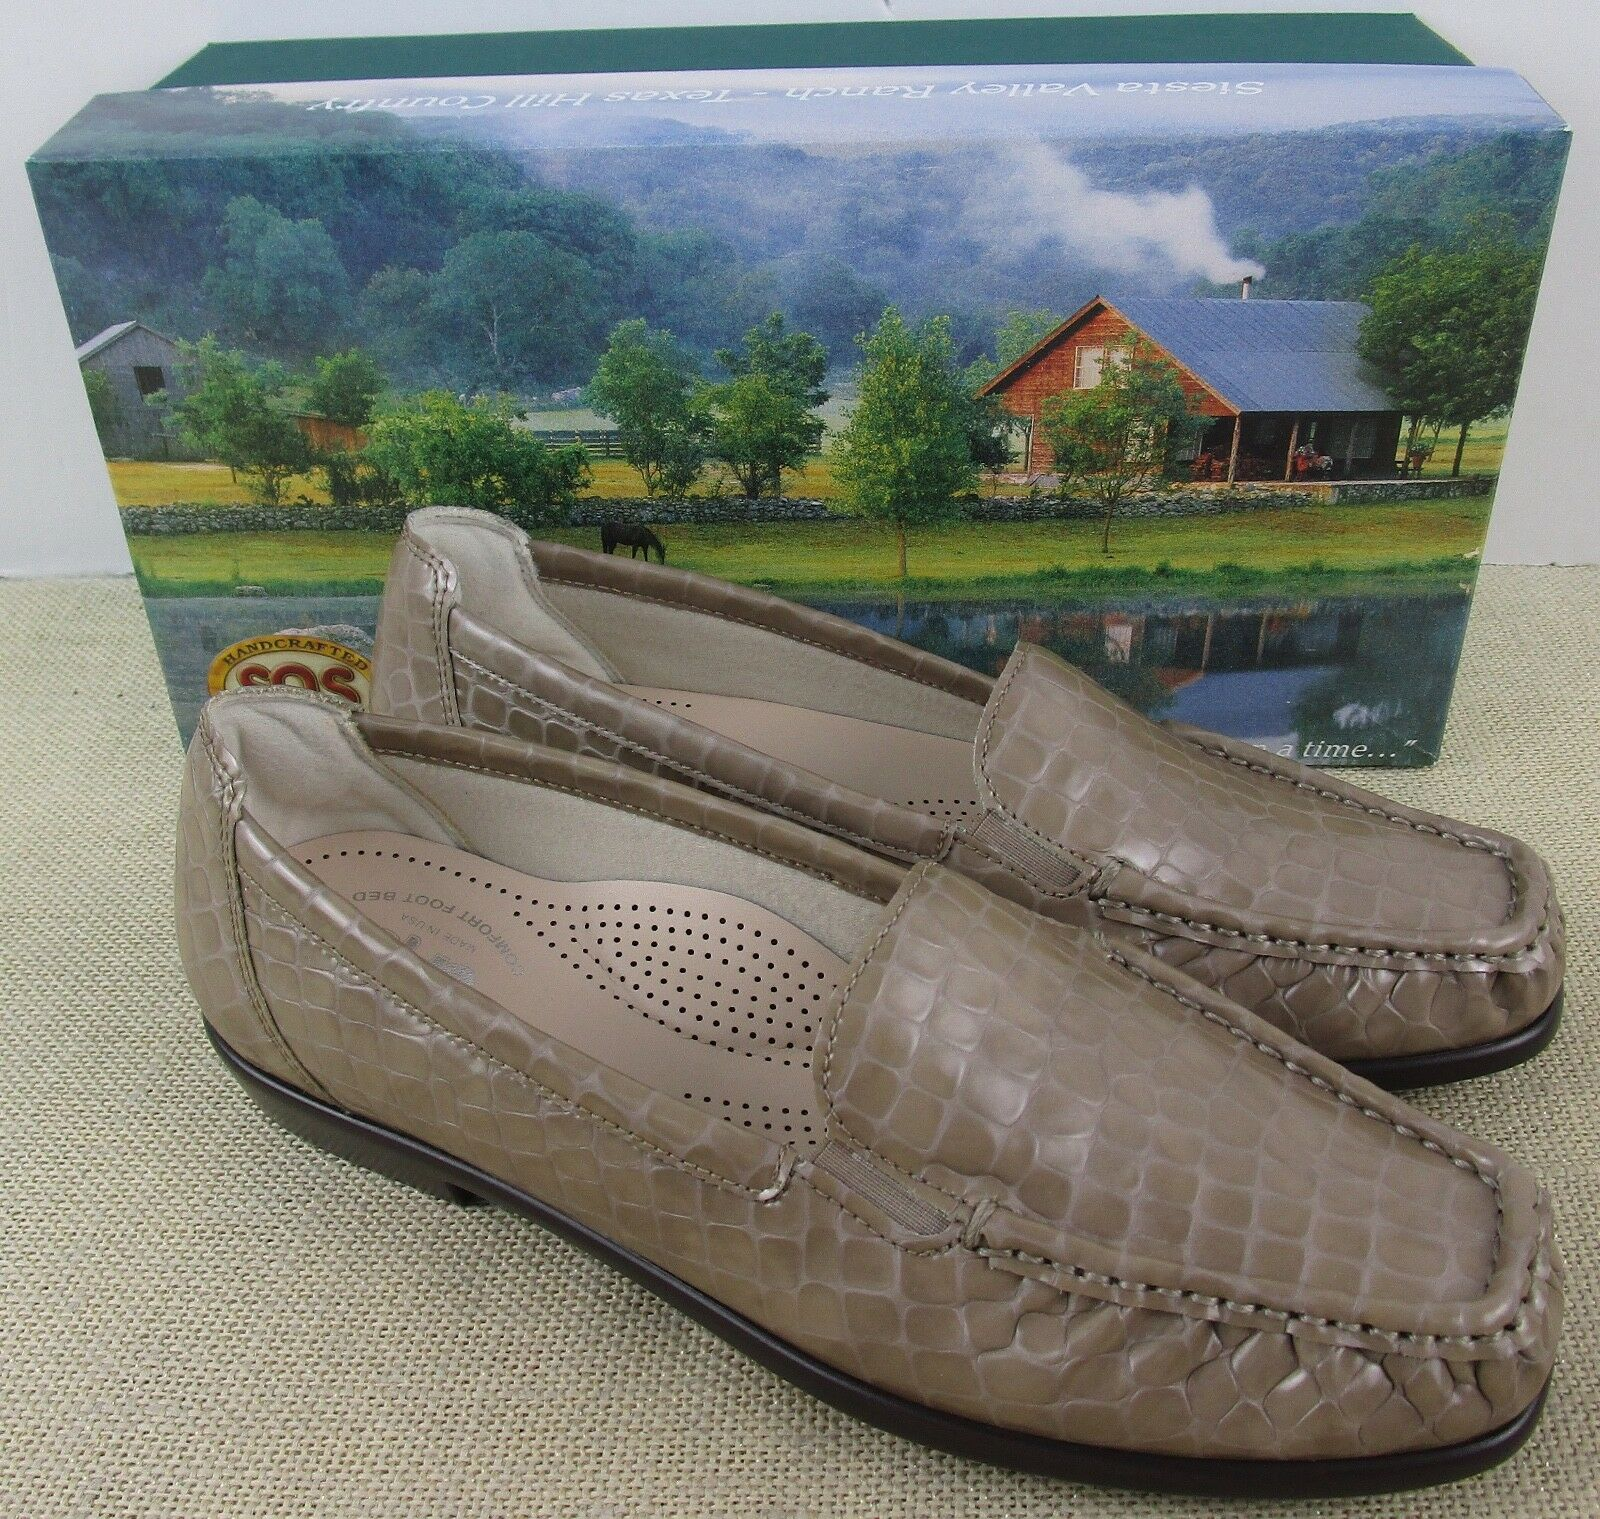 SAS JOY TAUPE CROC WOMEN'S SLIP ON LOAFER SHOES NEW IN BOX USA